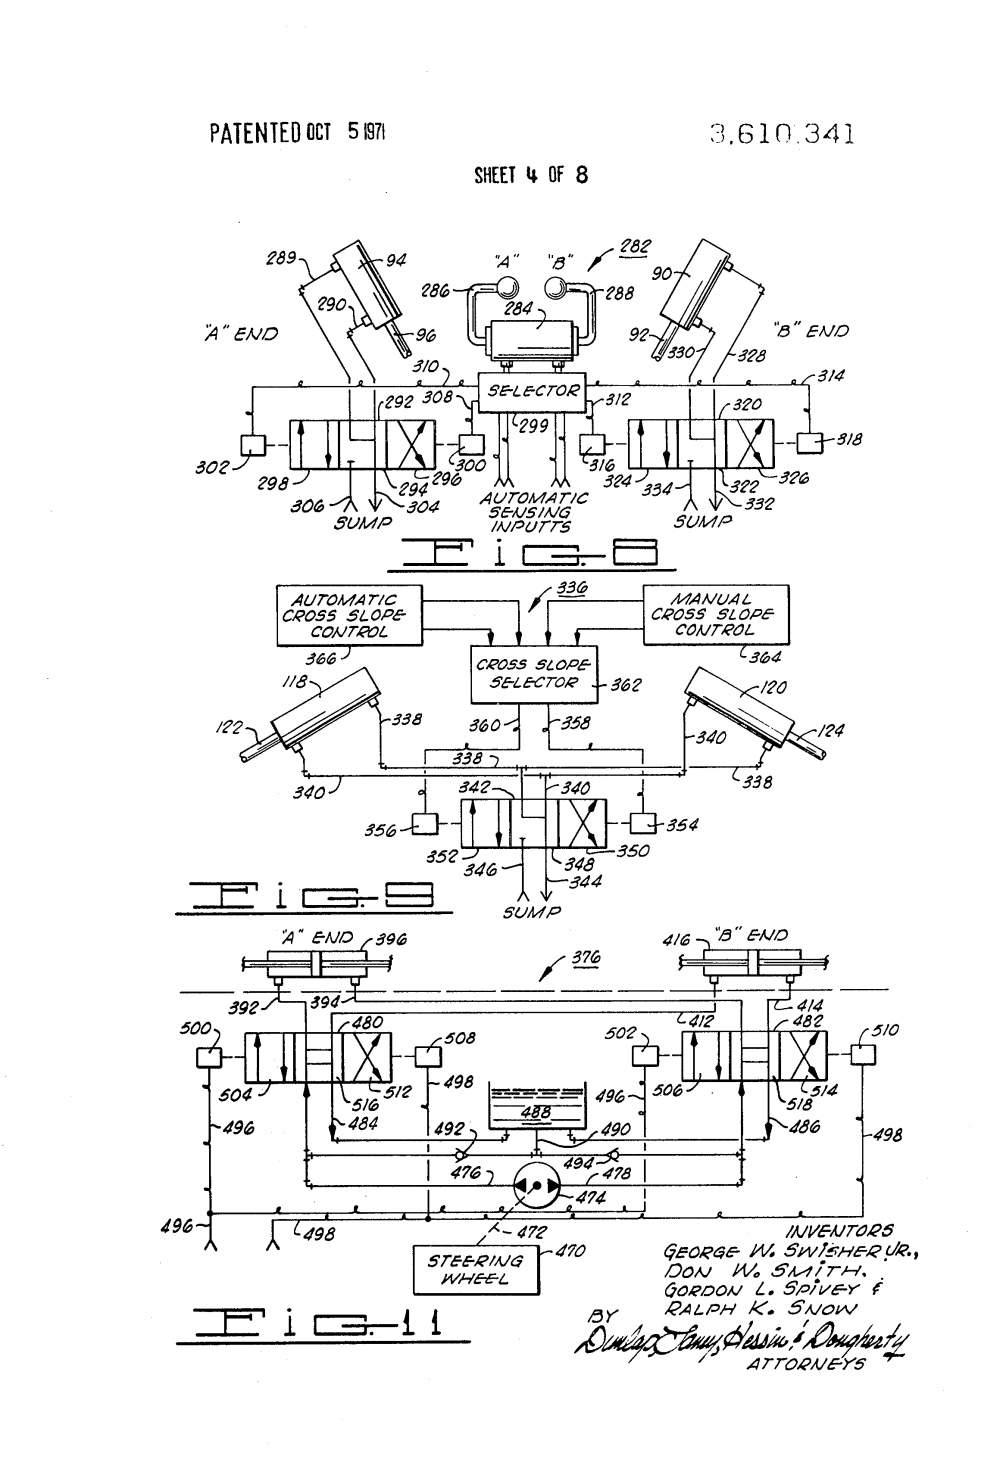 medium resolution of ih 574 wiring harness wiring diagram more ih 574 wiring diagram wiring diagram expert ih 574